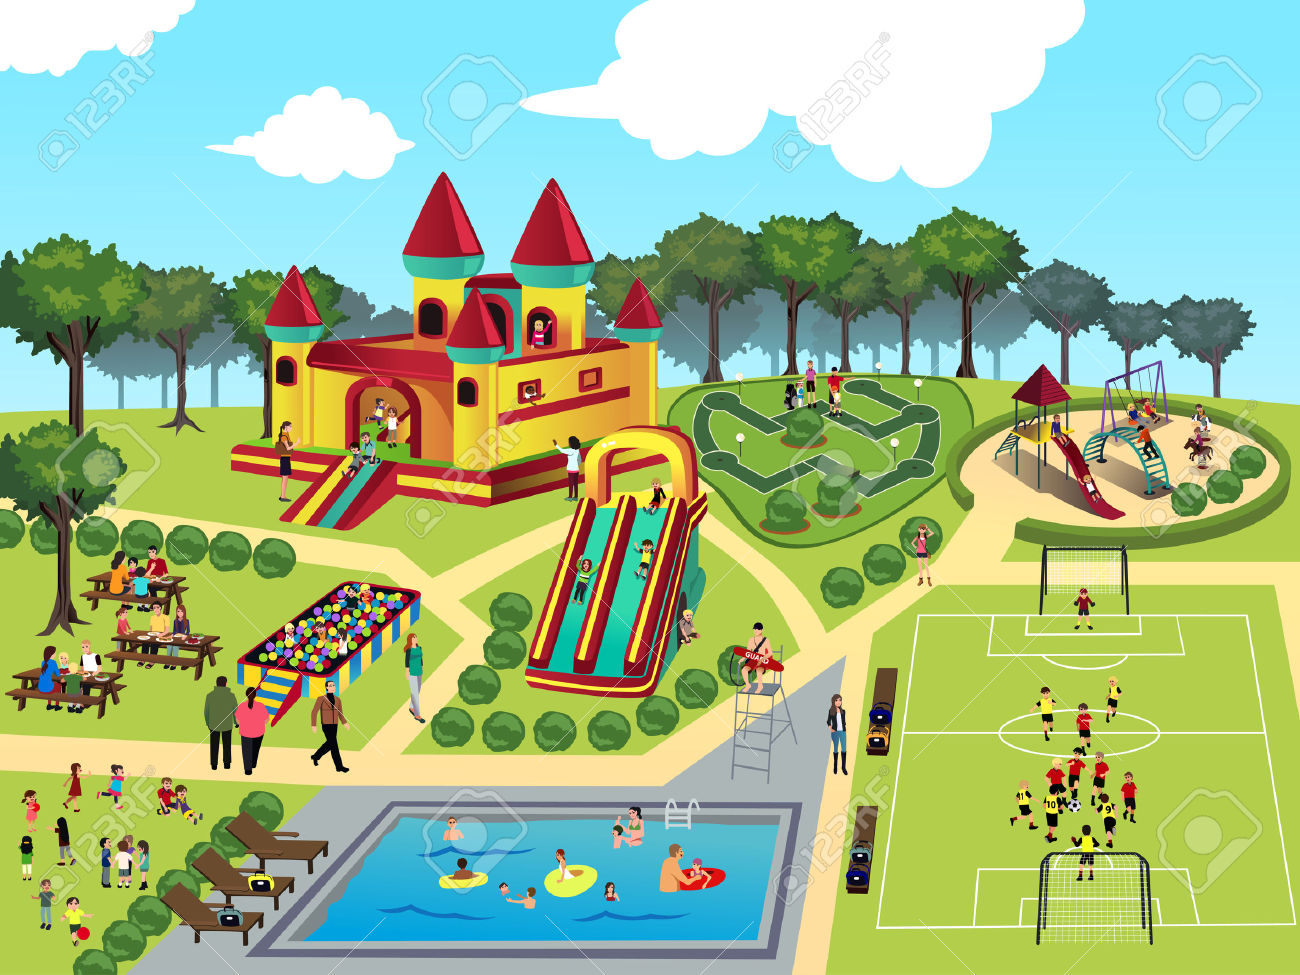 Park clipart graphic royalty free Park Clip Art Free | Clipart Panda - Free Clipart Images graphic royalty free